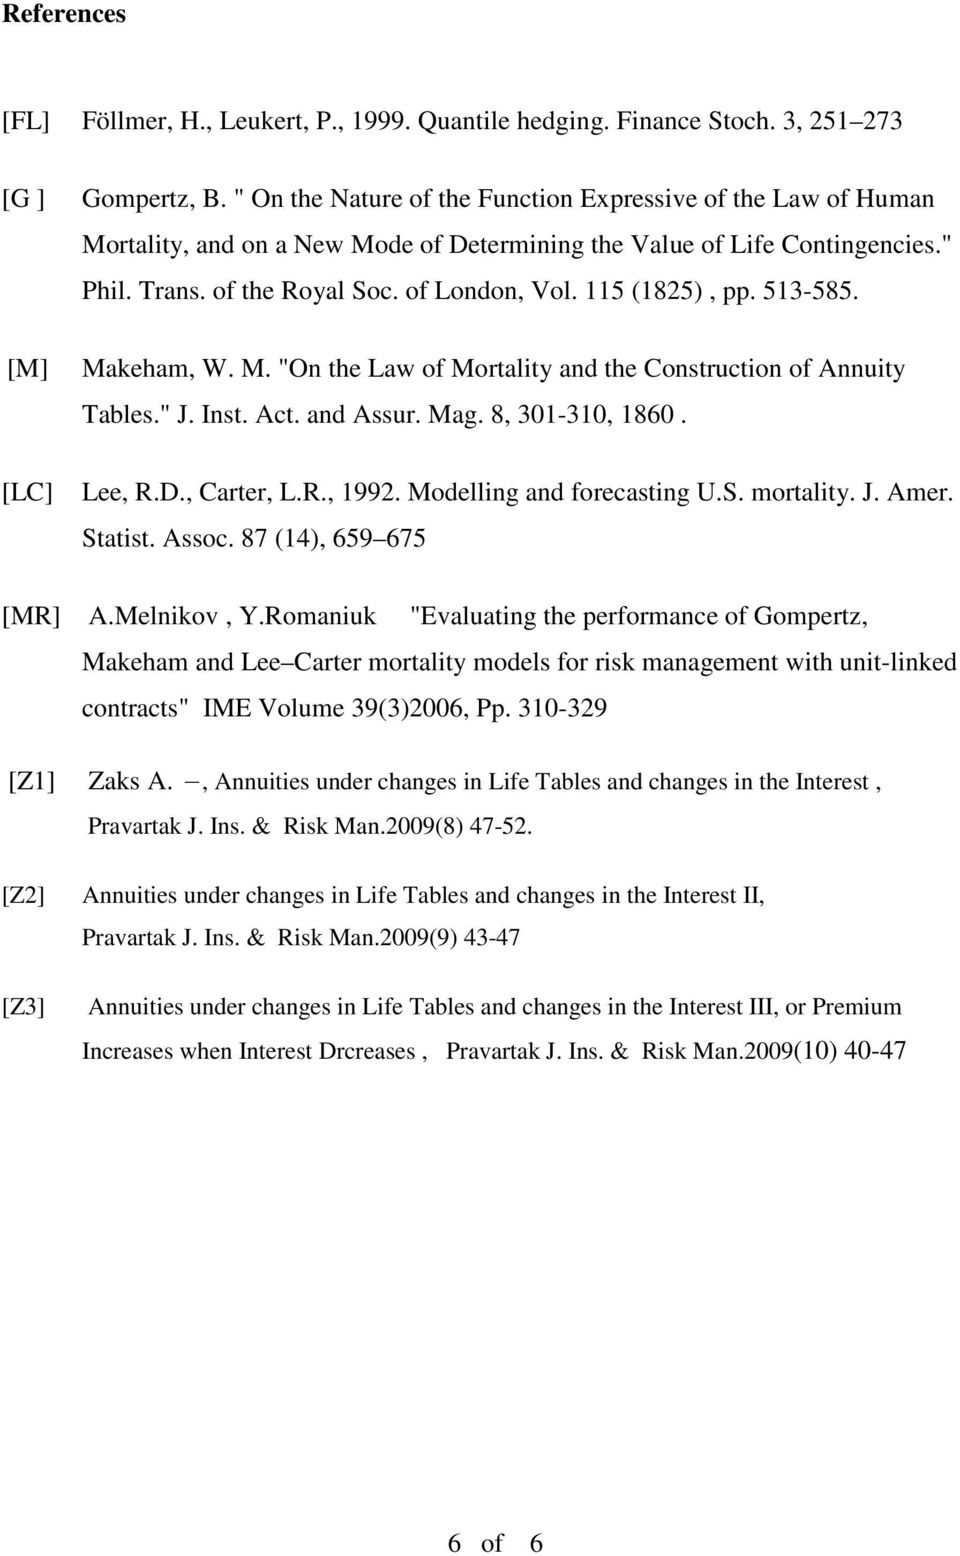 "[M] [LC] Makeham, W. M. ""O the Law of Mortality ad the Costructio of Auity Tables."" J. Ist. Act. ad Assur. Mag. 8, 301-310, 1860. Lee, R.D., Carter, L.R., 1992. Modellig ad forecastig U.S. mortality."